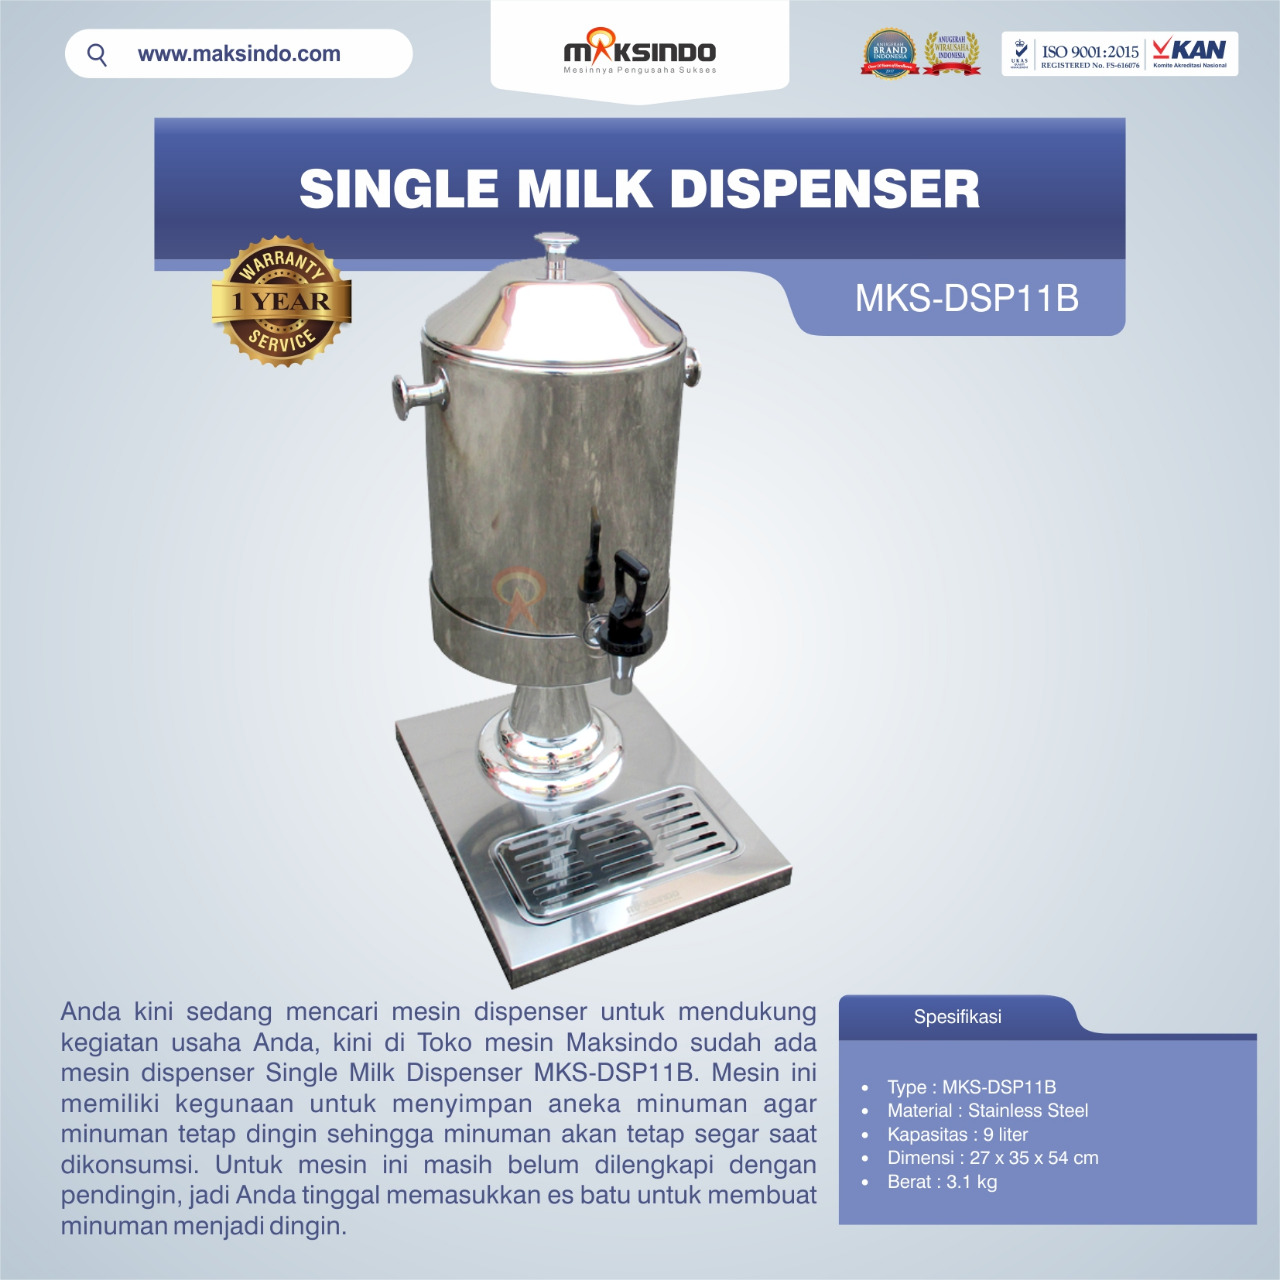 Jual Single Milk Dispenser MKS-DSP11B di Tangerang